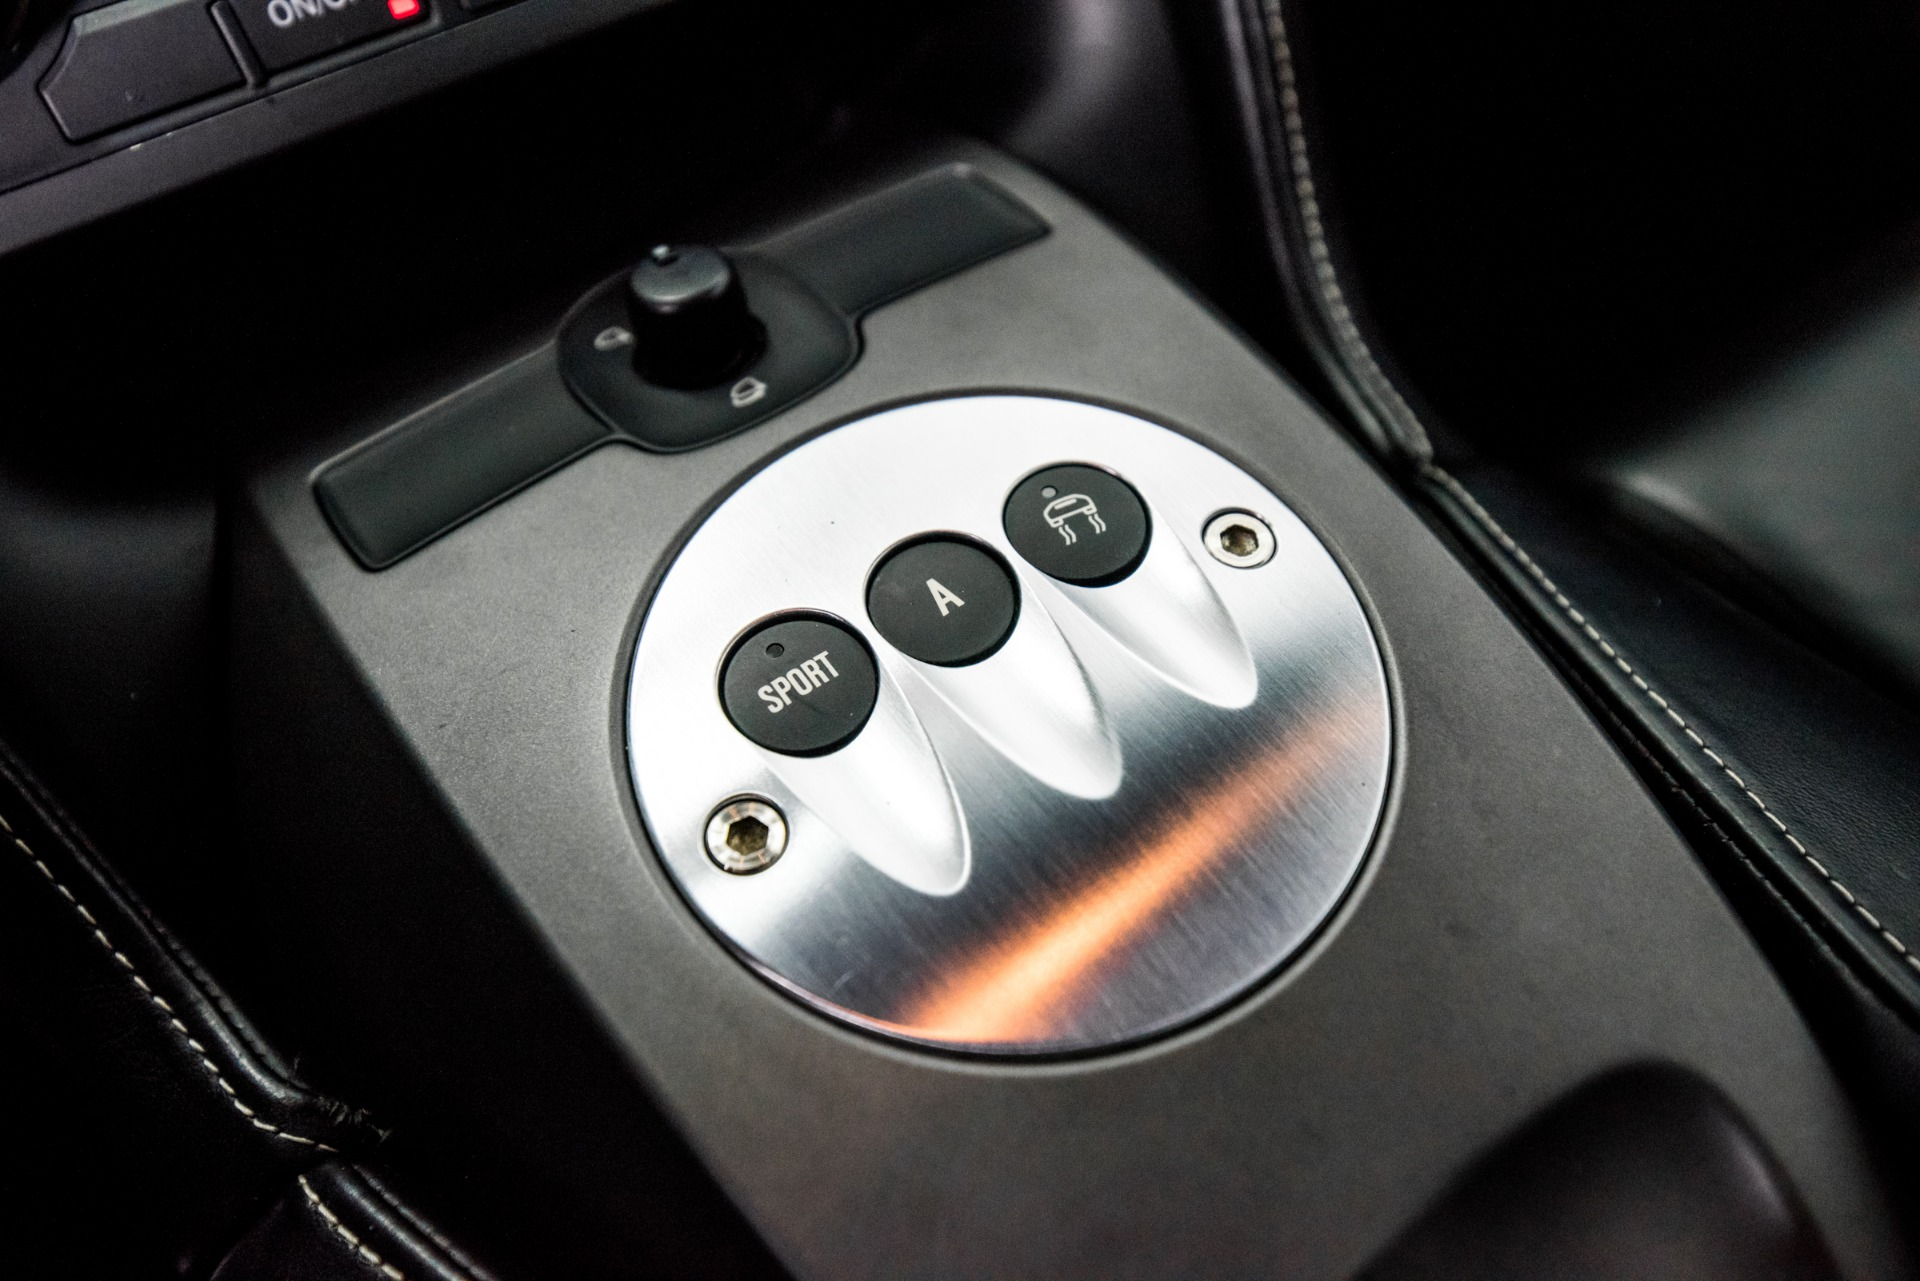 Used 2004 Lamborghini Gallardo Used 2004 Lamborghini Gallardo for sale Sold at Response Motors in Mountain View CA 22